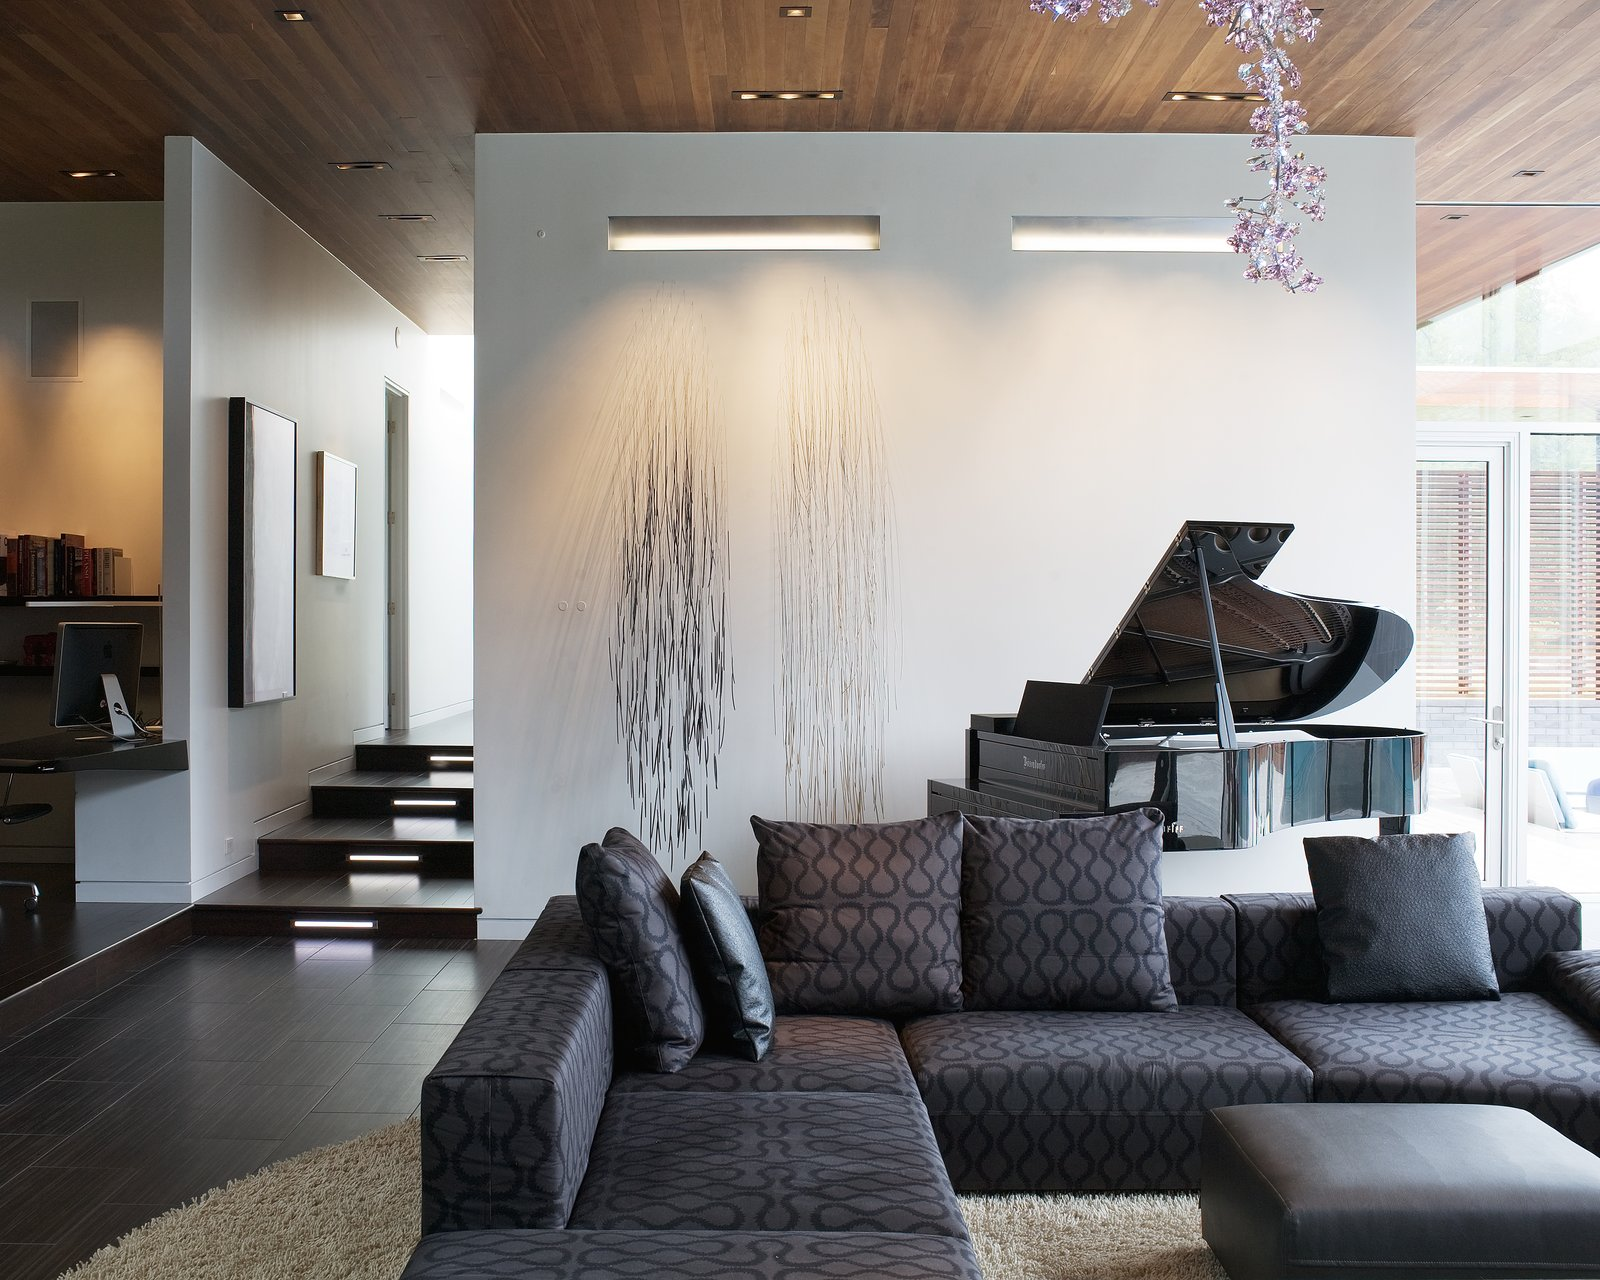 In the living room, several art installations add flair, including one special addition from Anne Lindberg, an artist known for understated line drawings. Strands of welding wire with tiny sculpted wood ends were drilled into the wall near the piano so they would stick out and move with breezes from the courtyard. Its cascading lines contrast directly with the curvilinear, soft pink Swarovski crystal chandelier by Tord Boontje.